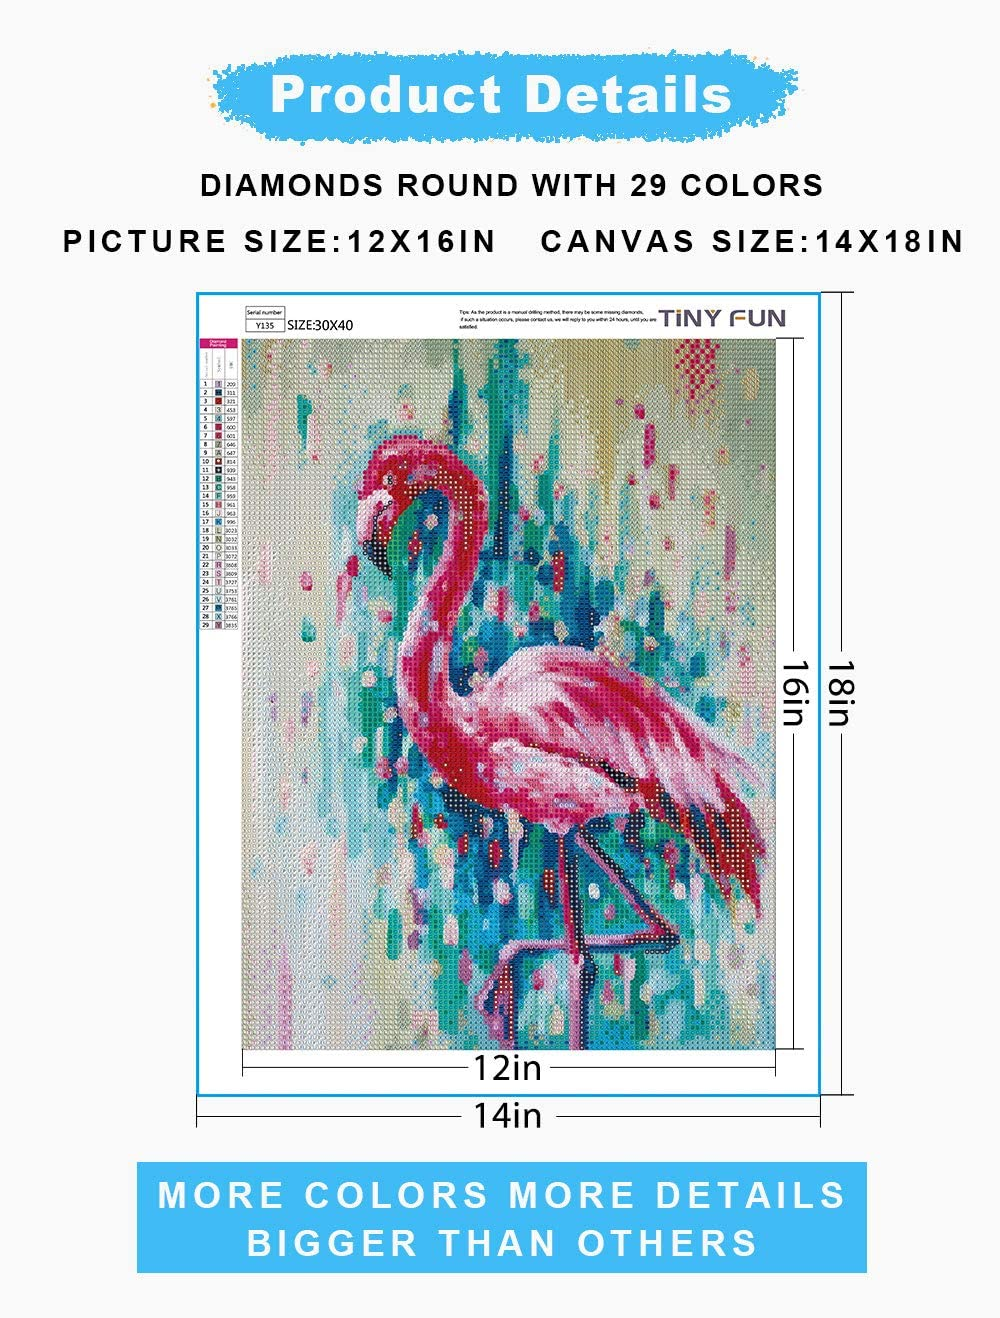 15x19 Inches // 38x48cm Adult 5D DIY Diamond Painting Kit for Children Beginners Special-Shaped Partial Rhinestone Crystal Painting Diamond Crafts Wall Decoration Decoration Wolf